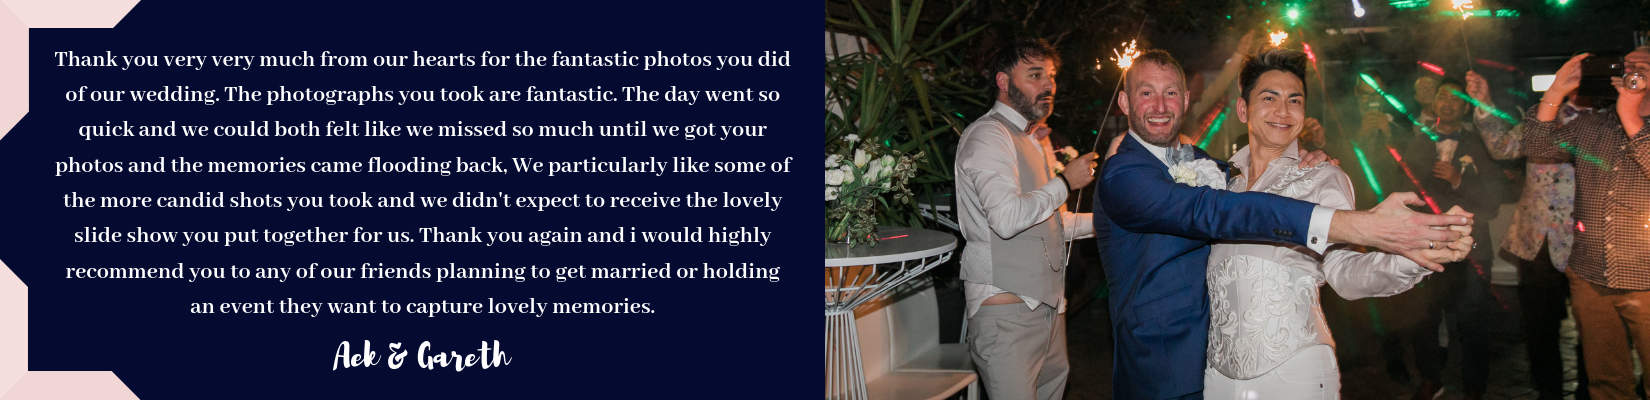 Photographed With Love Wedding Photography Testimonials